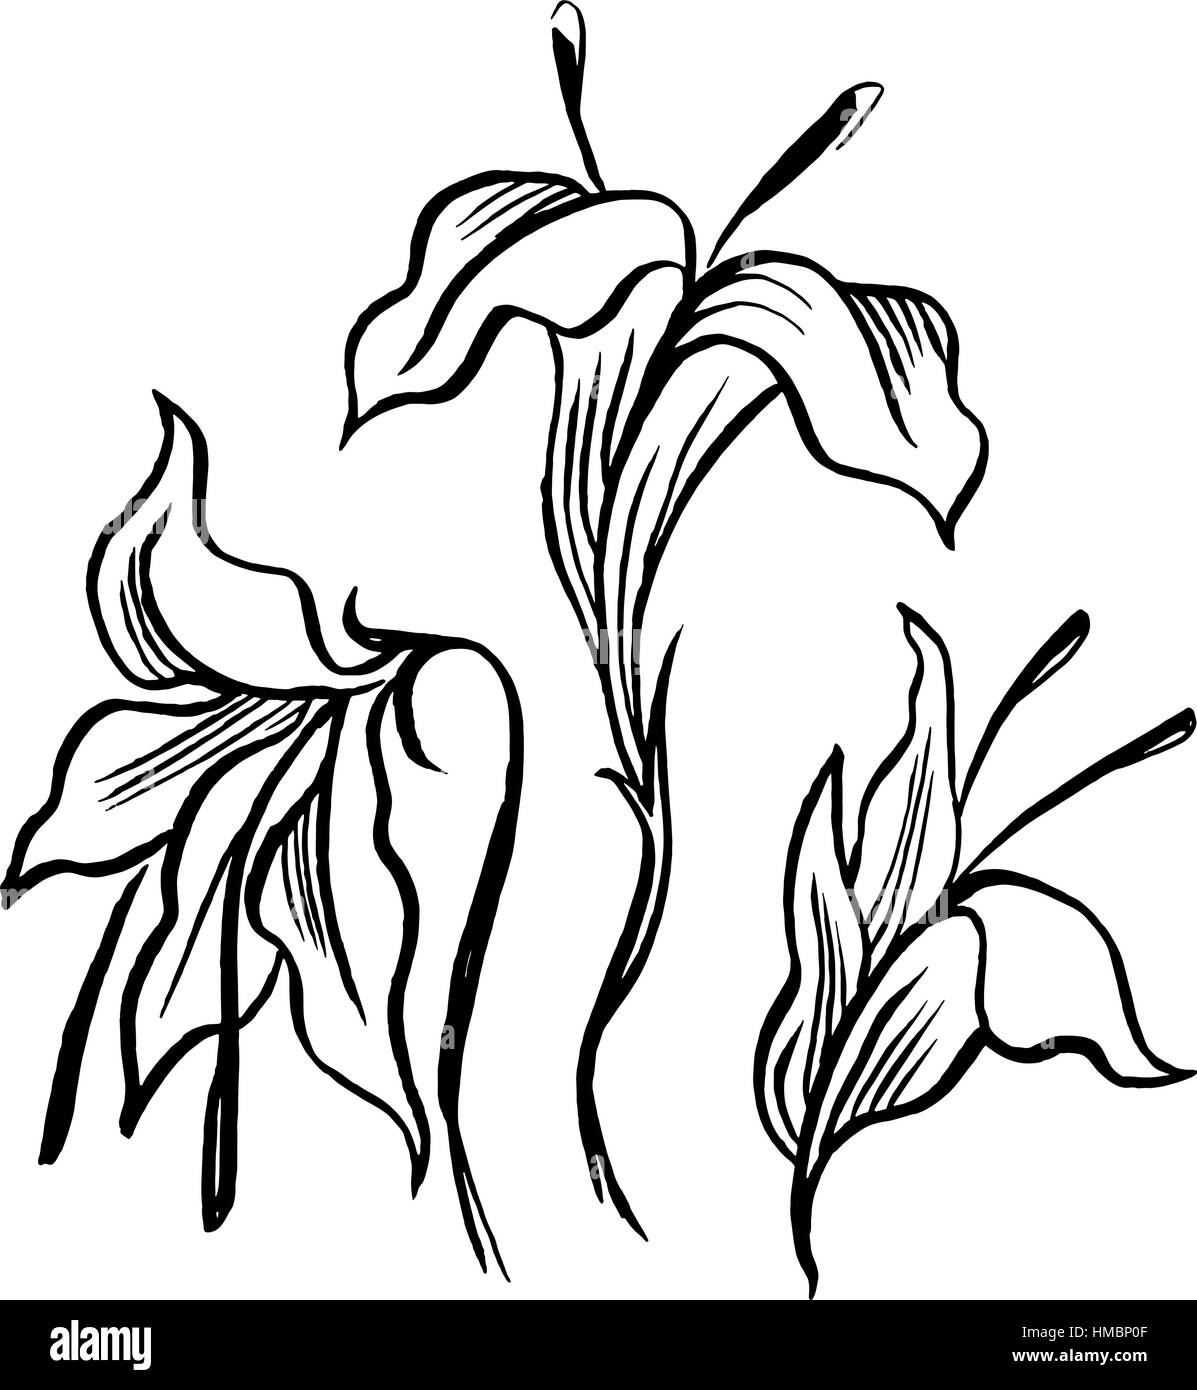 Vector Sketch Black Contour Of Lily Flowers Stock Vector Art